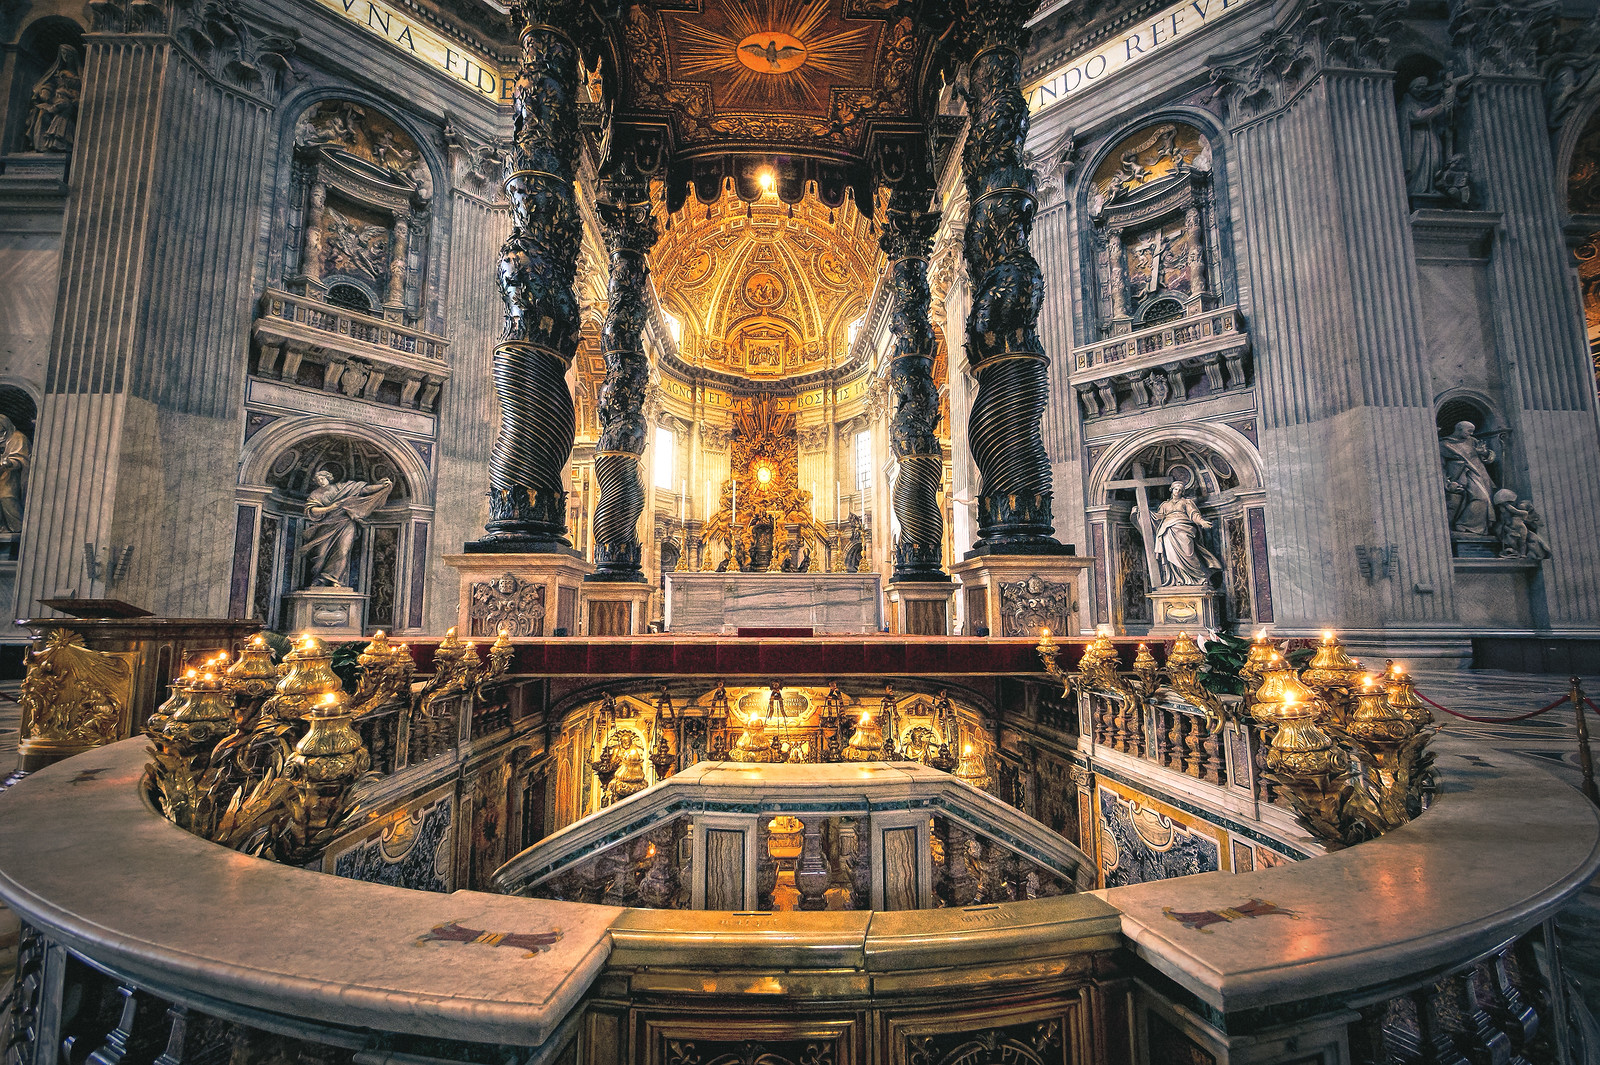 High Altar of St Peters Basilica Rome Italy